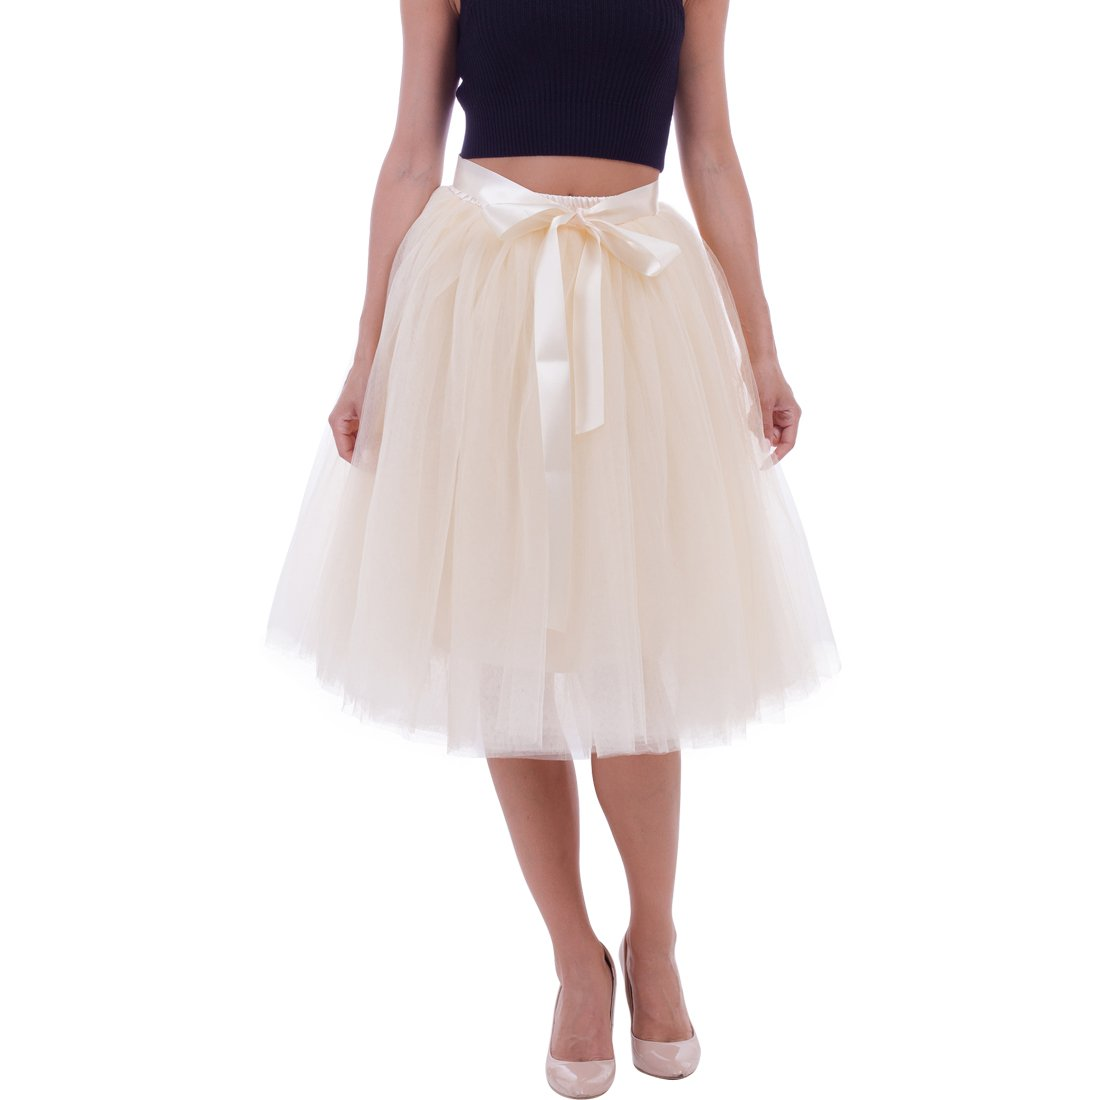 753fe678c Adjustable Waist: 65-110cm/25.5-43.3inches, the waist can stretch up to  110cm/43.3inches, The Skirt length is 65cm/25.6inches.